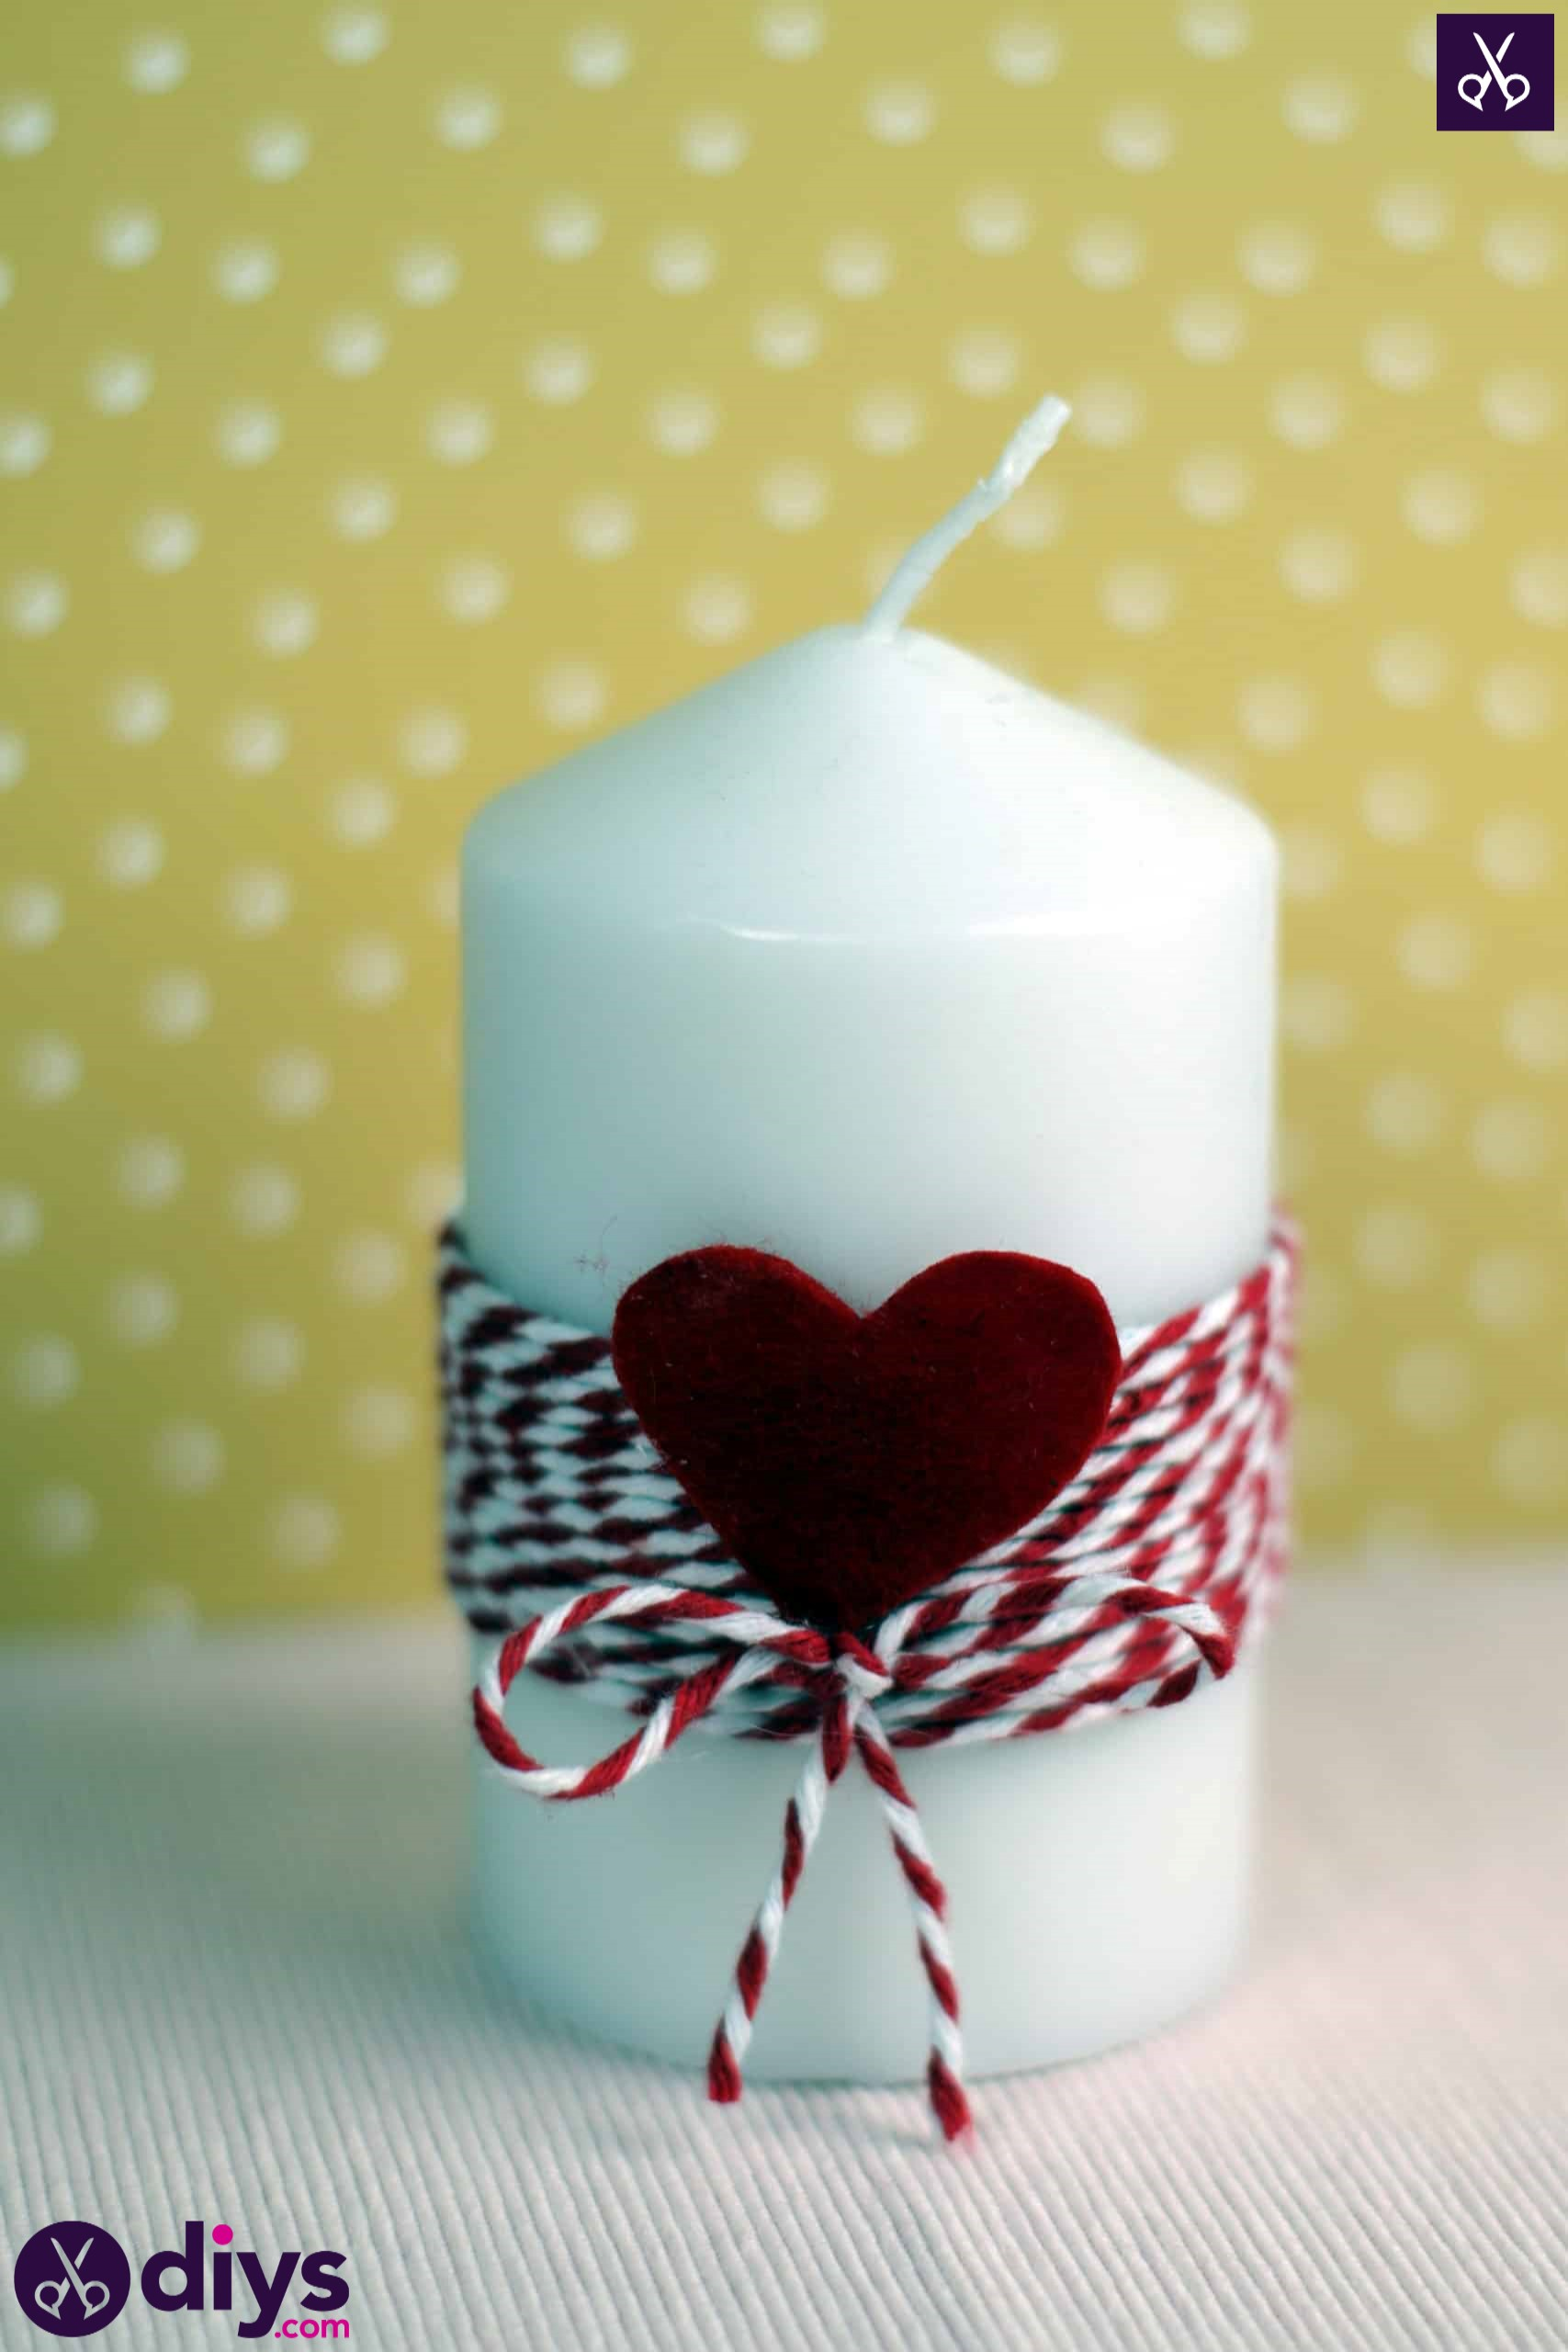 Diy valentine's candle simple craft